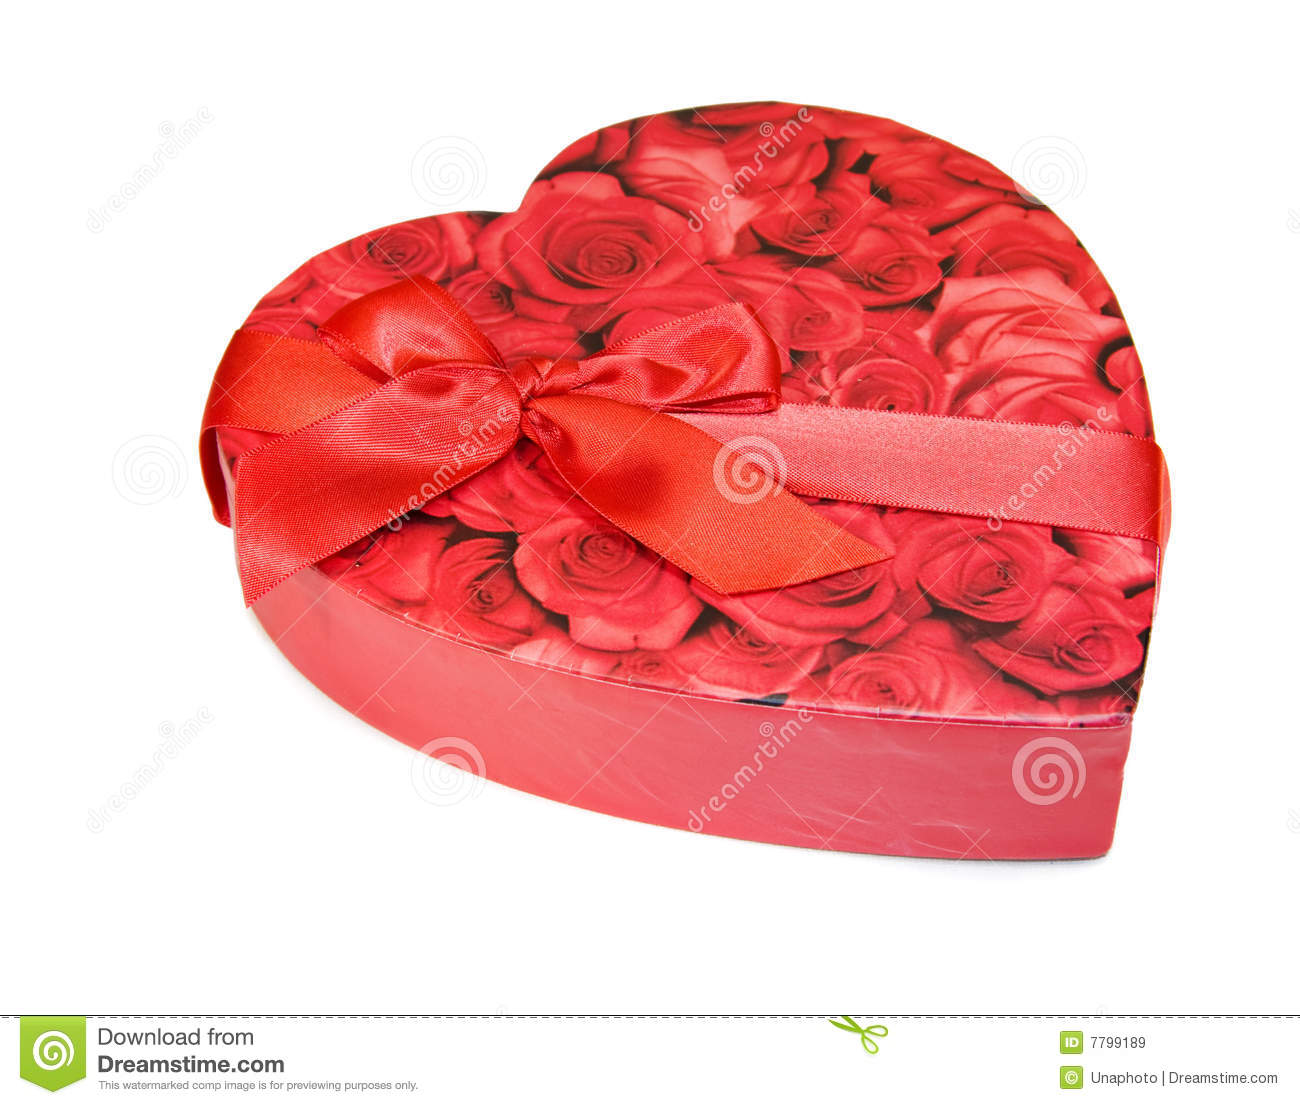 Heart shaped box of chocolates with red roses